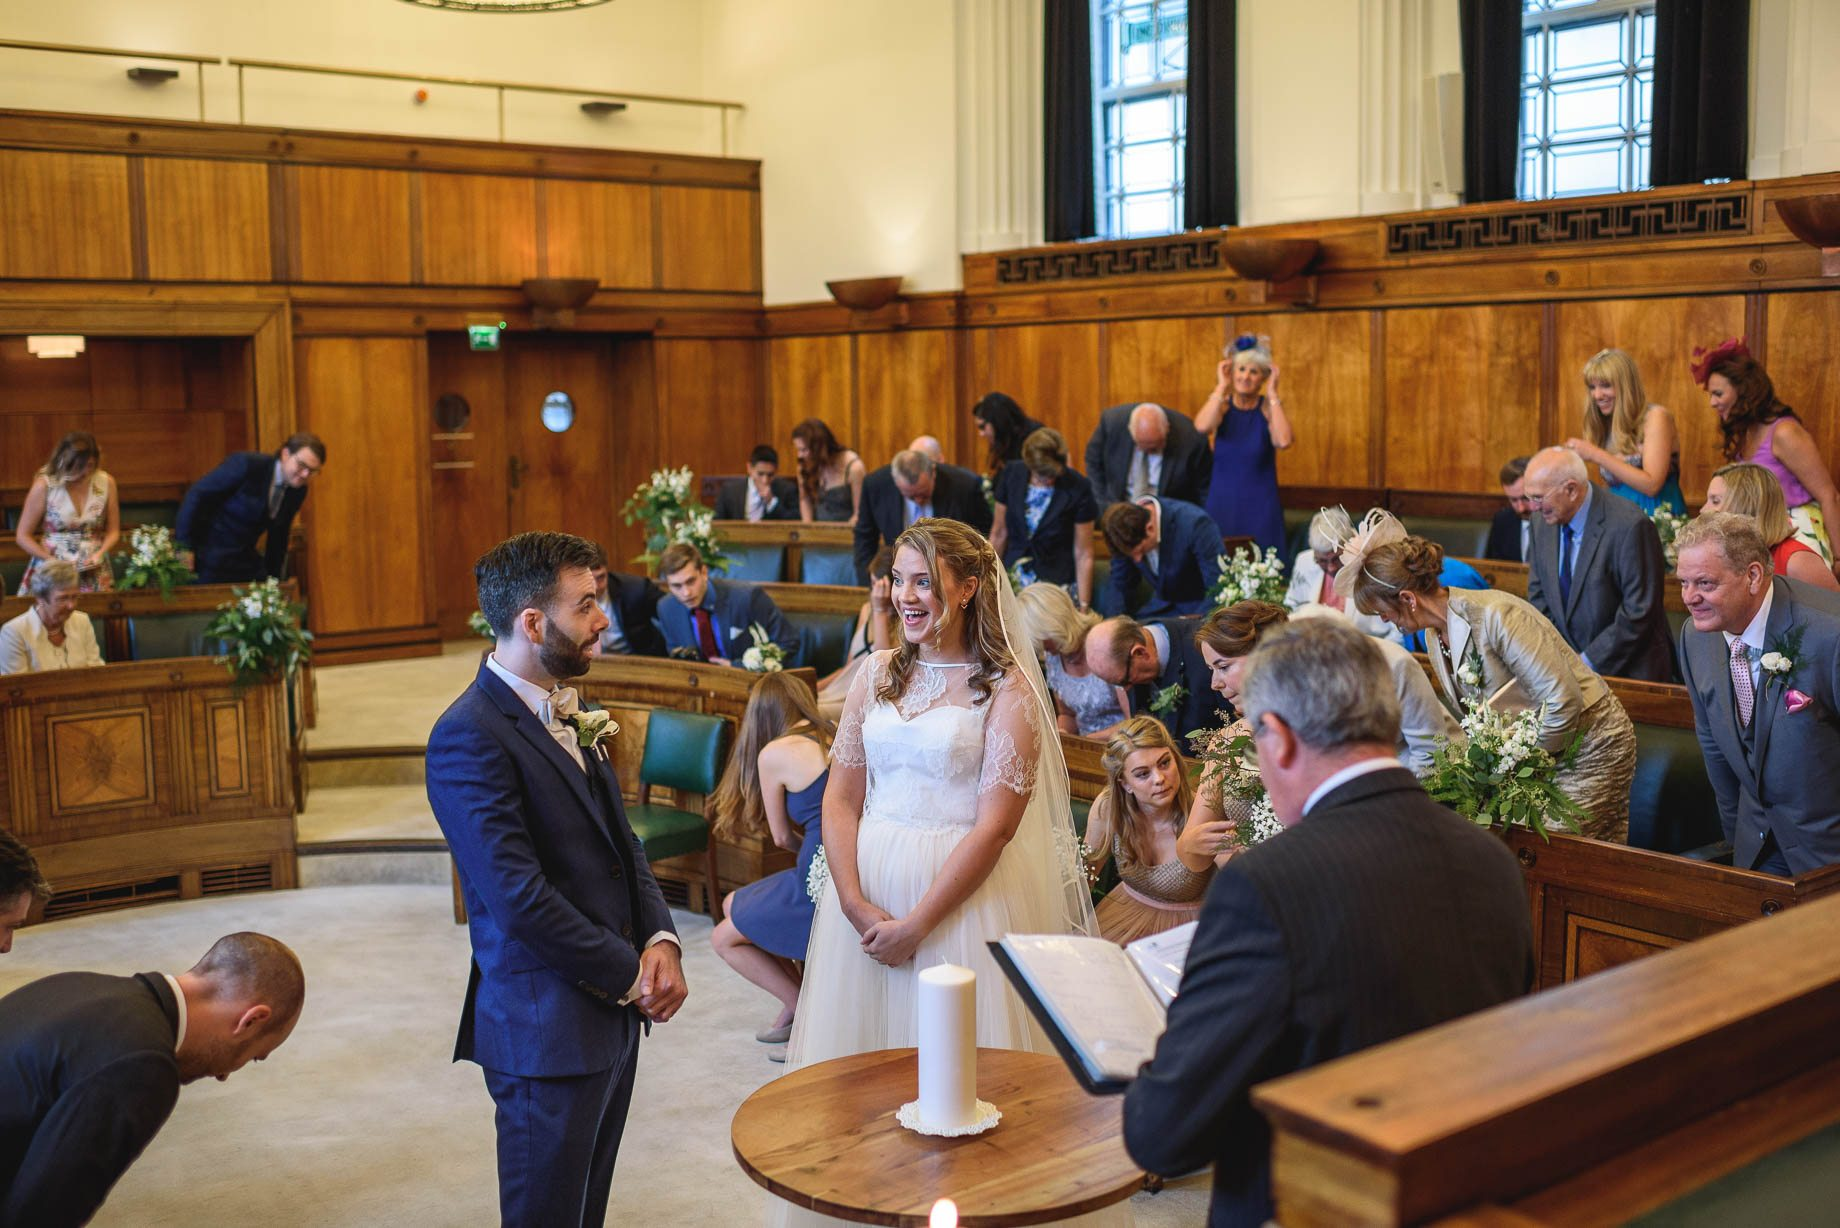 London Wedding Photography - Guy Collier Photography - LJ + Russell (53 of 155)